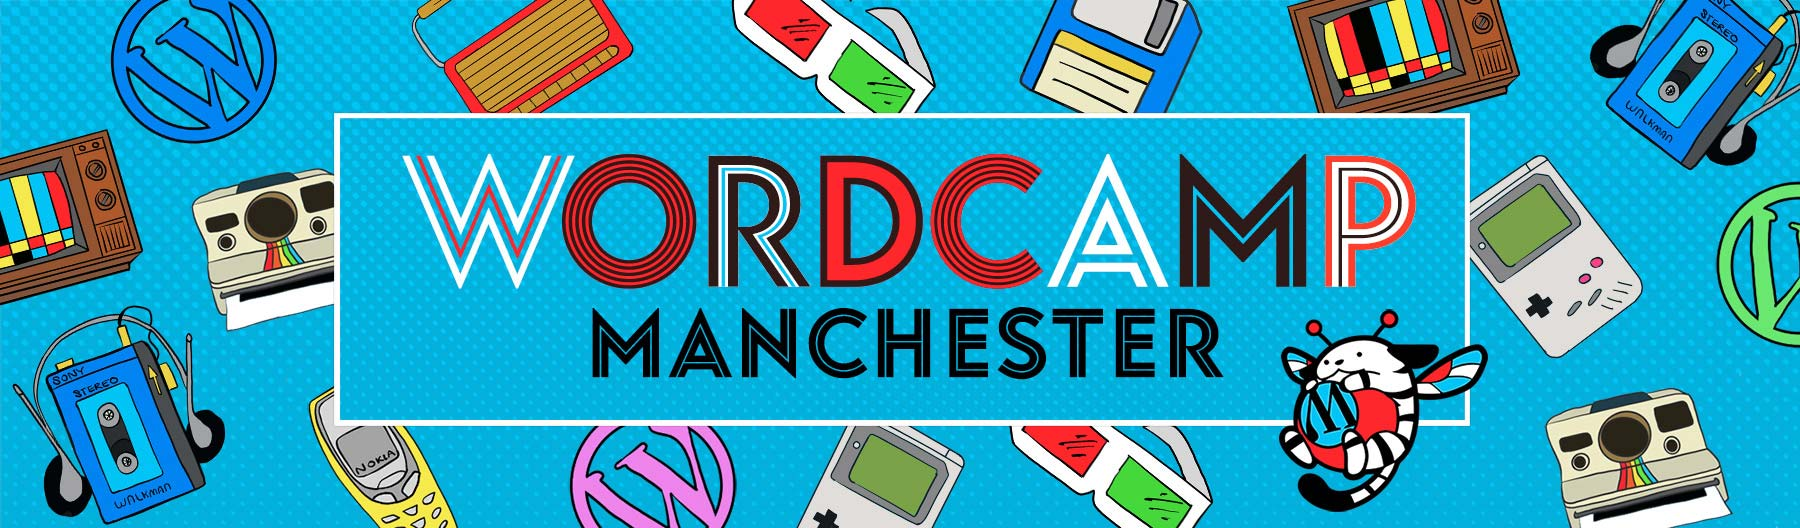 Designing WordCamp Manchester 2018 Project with Factory